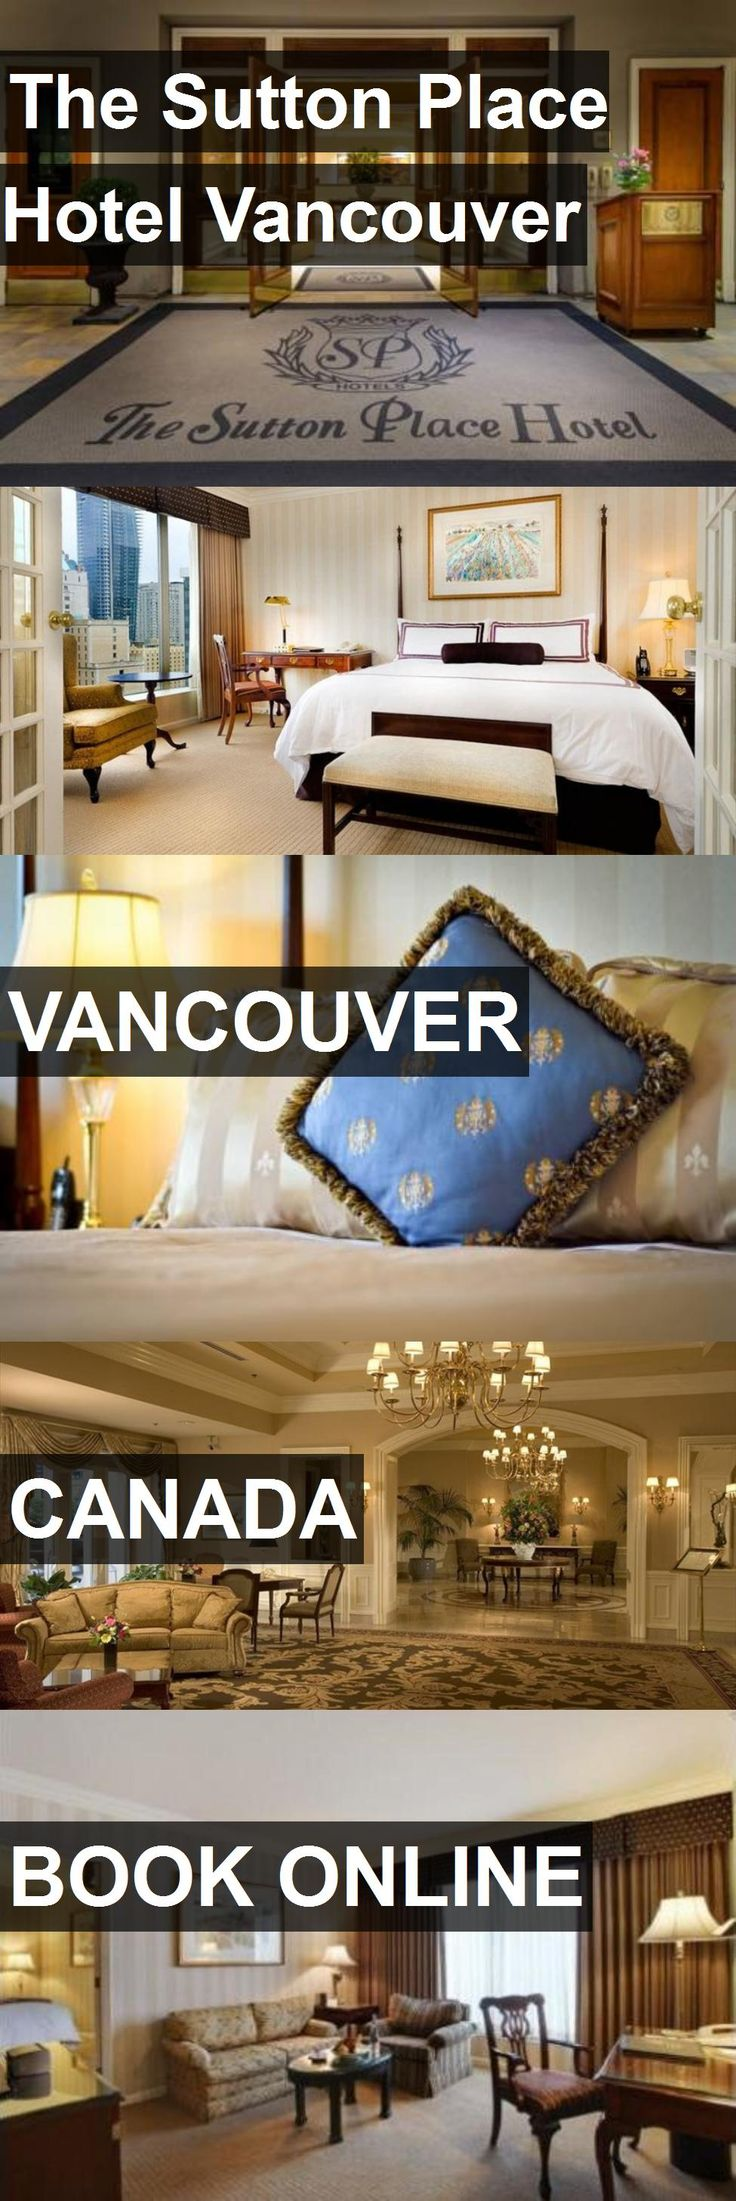 Hotel The Sutton Place Hotel Vancouver in Vancouver, Canada. For more information, photos, reviews and best prices please follow the link. #Canada #Vancouver #TheSuttonPlaceHotelVancouver #hotel #travel #vacation